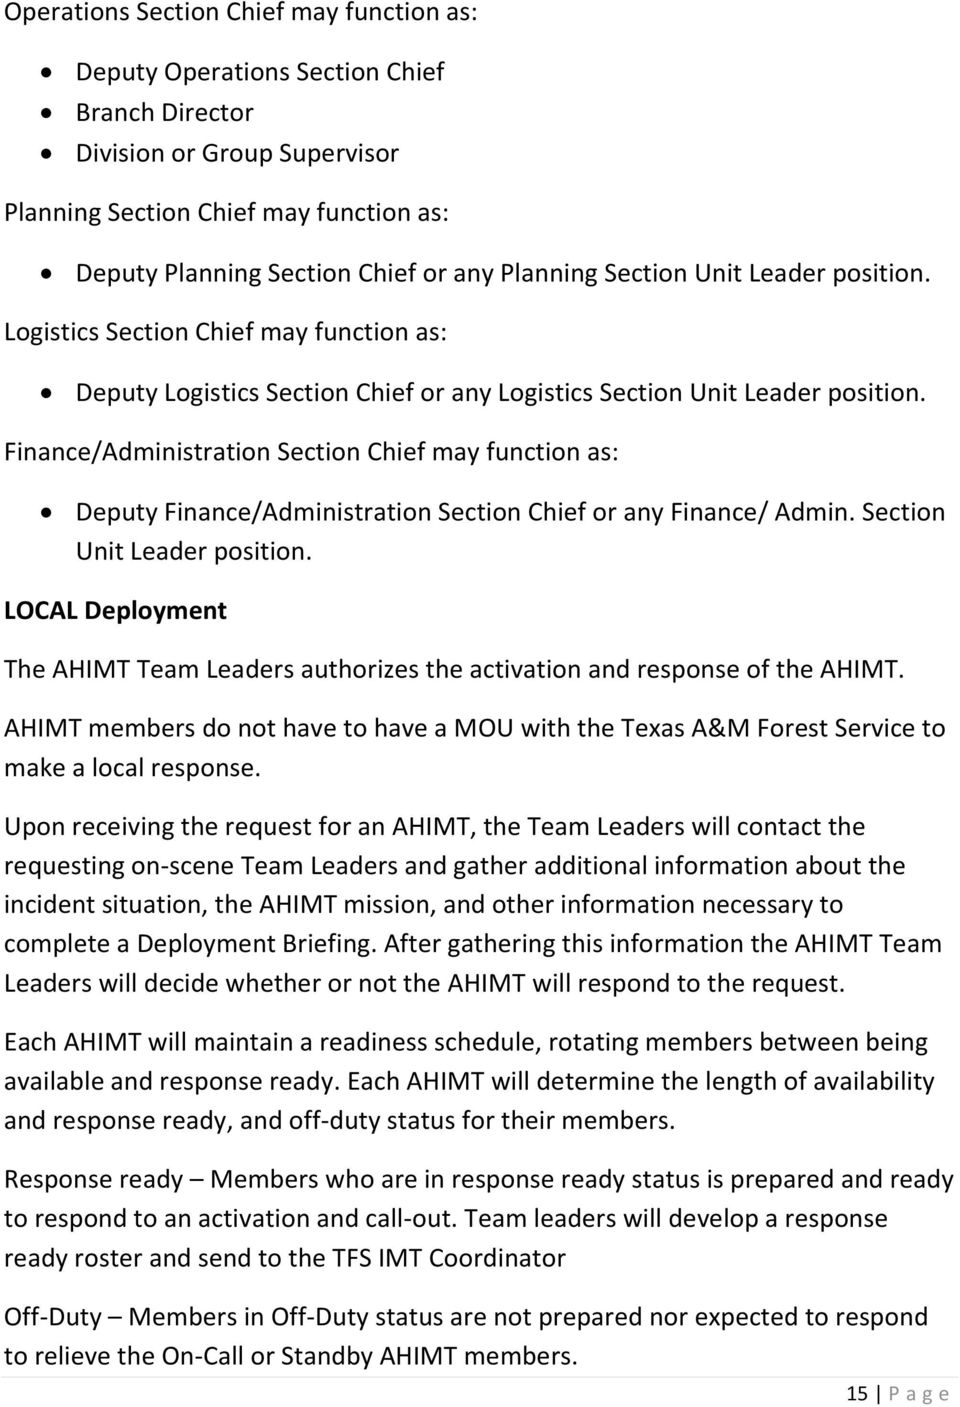 Finance/Administration Section Chief may function as: Deputy Finance/Administration Section Chief or any Finance/ Admin. Section Unit Leader position.